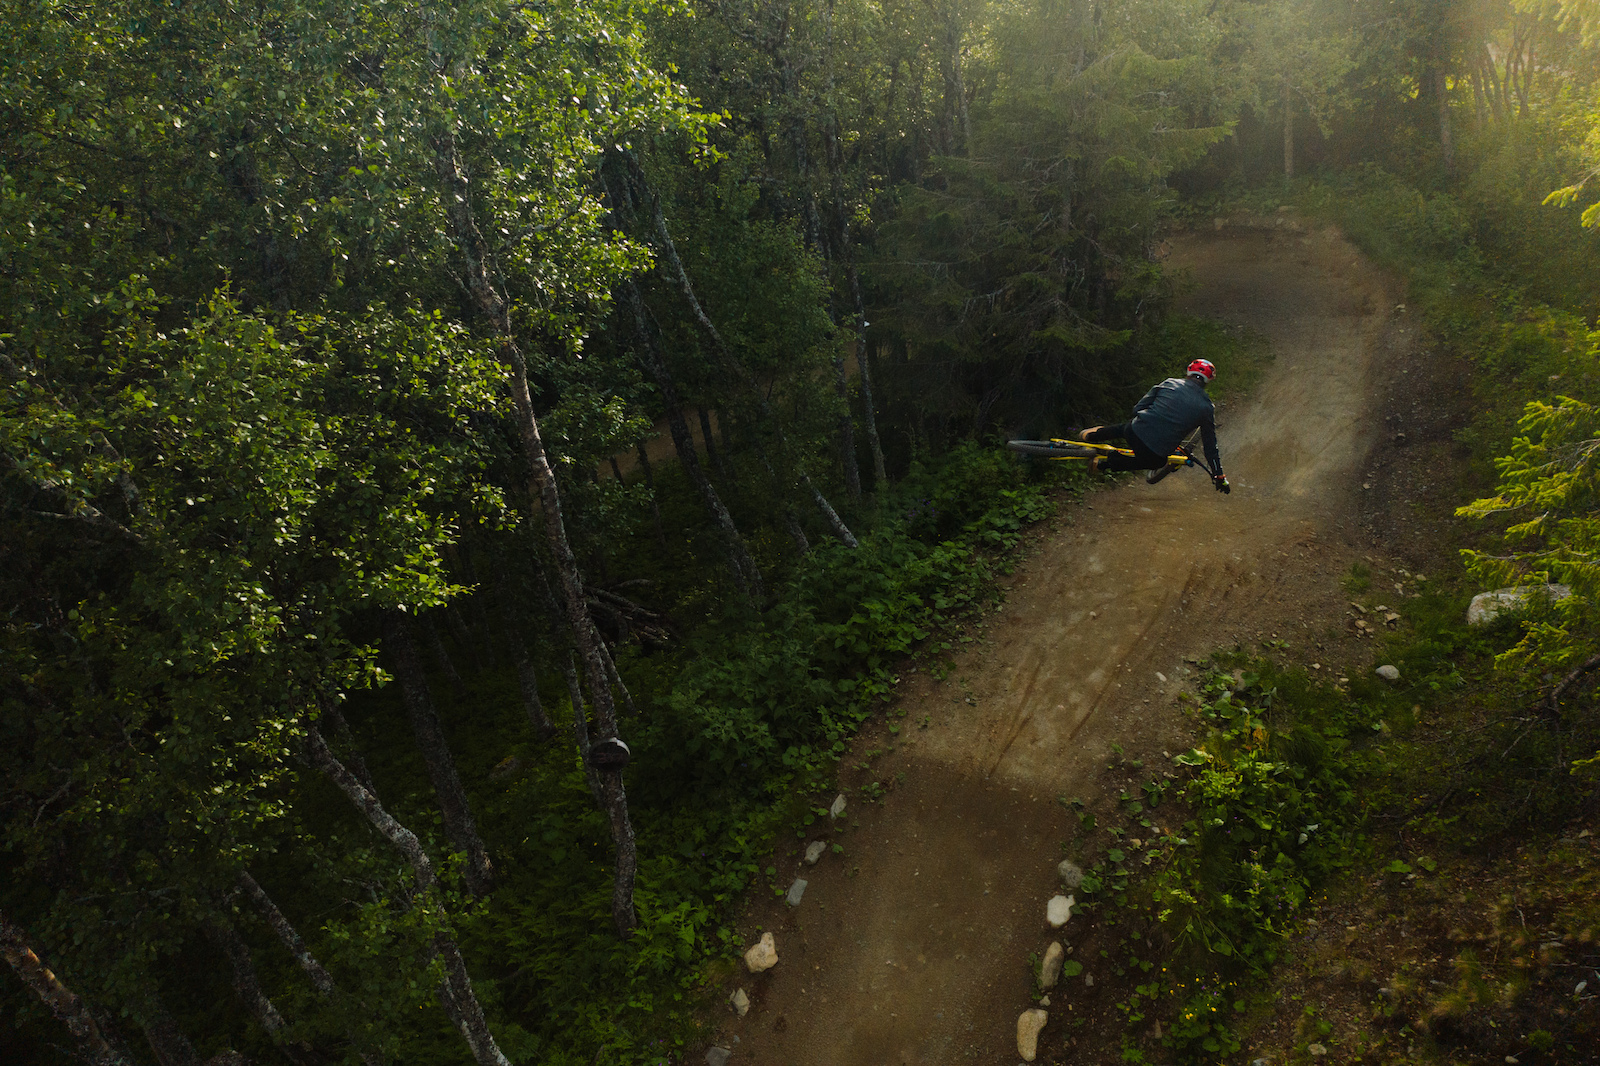 Greg Minaar on the Shimano jump trail while on his visit to re Sweden.